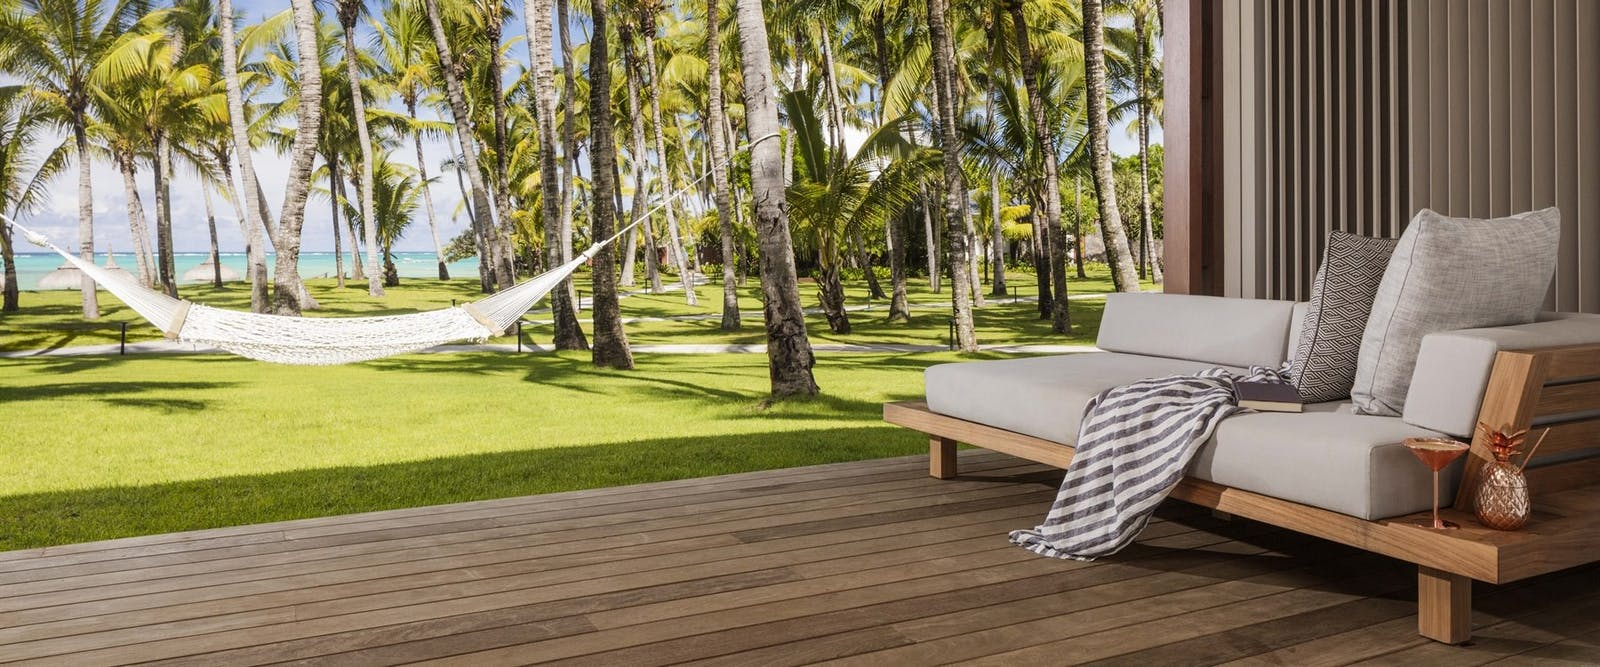 Ocean Suite Terrace with Hammock at One&Only Le Saint Geran, Mauritius